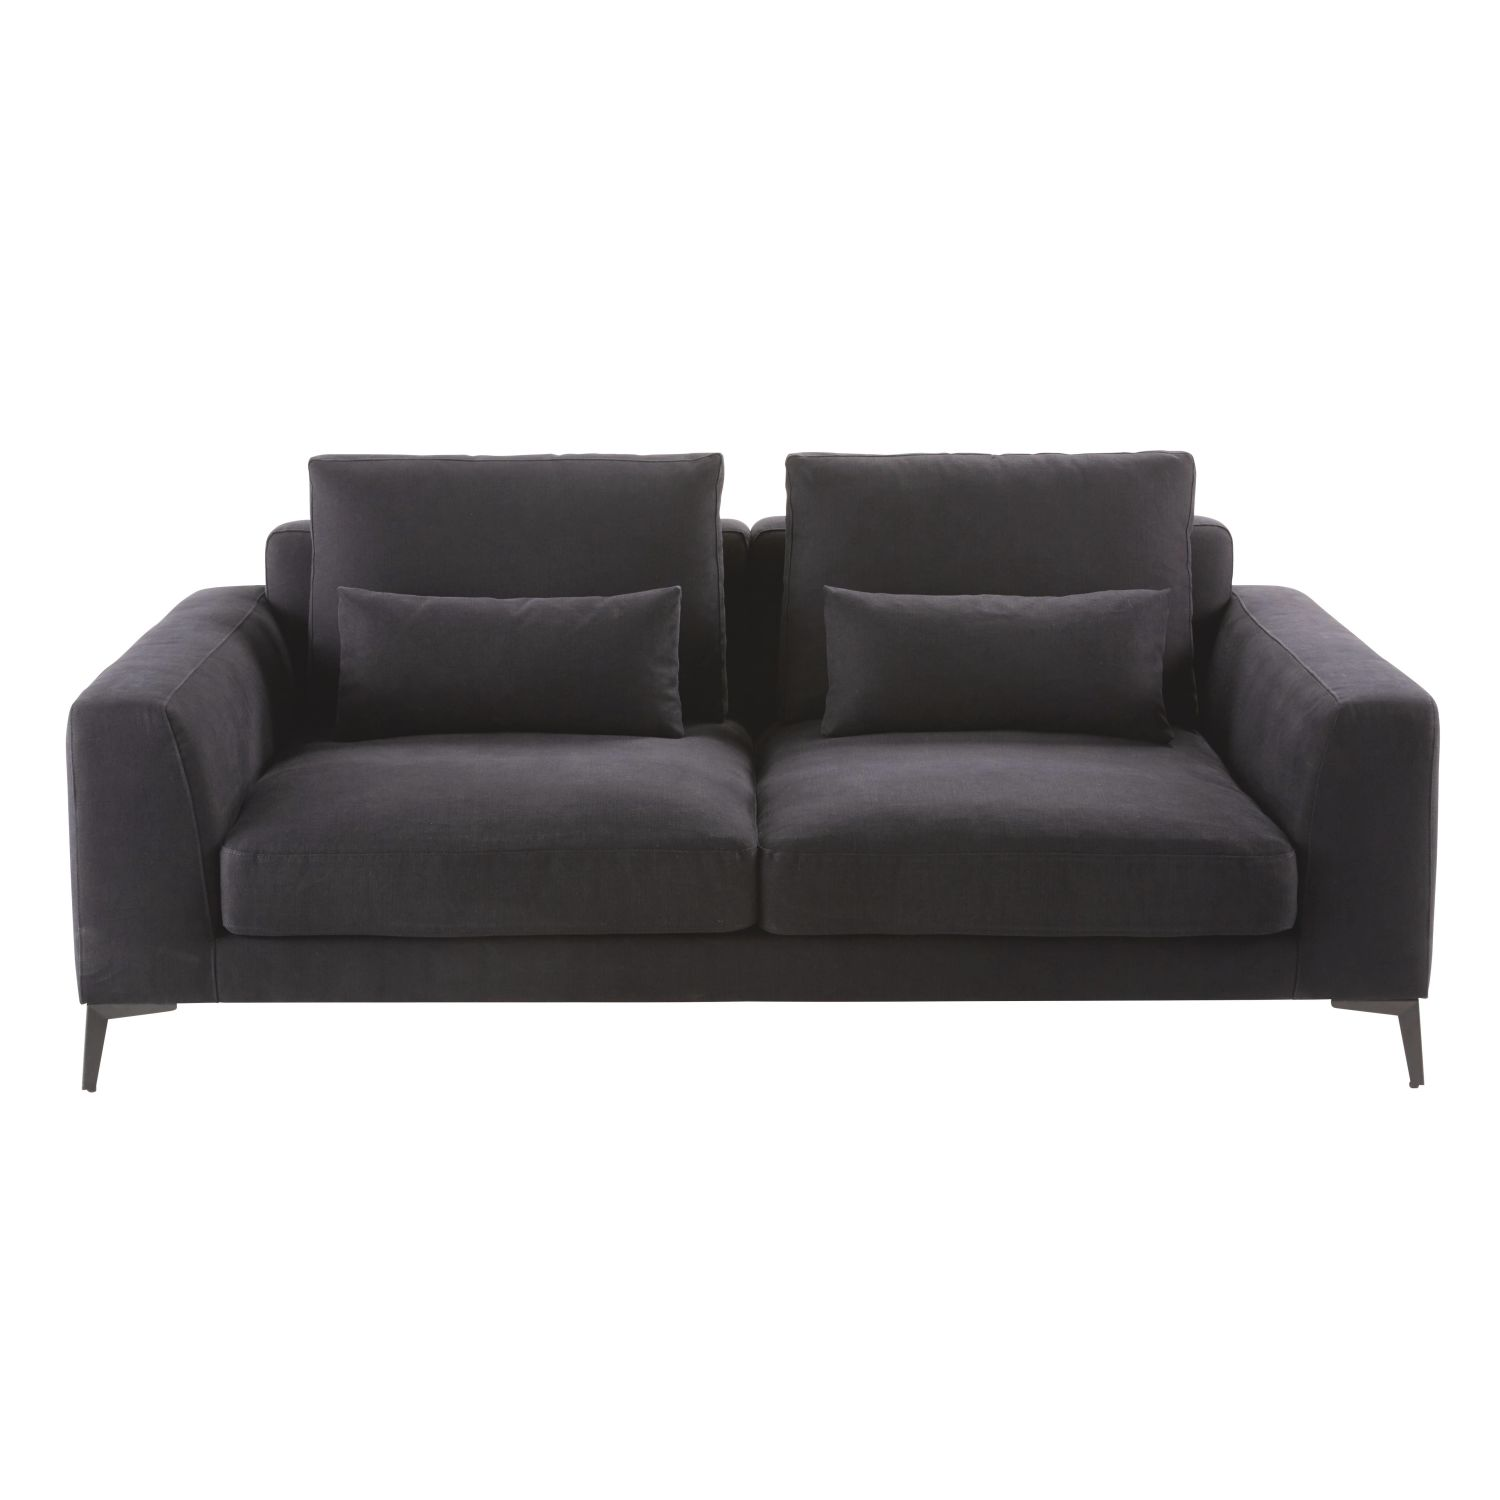 2 3 sitzer sofa bezug aus baumwolle und leinen schiefergrau maisons du monde. Black Bedroom Furniture Sets. Home Design Ideas